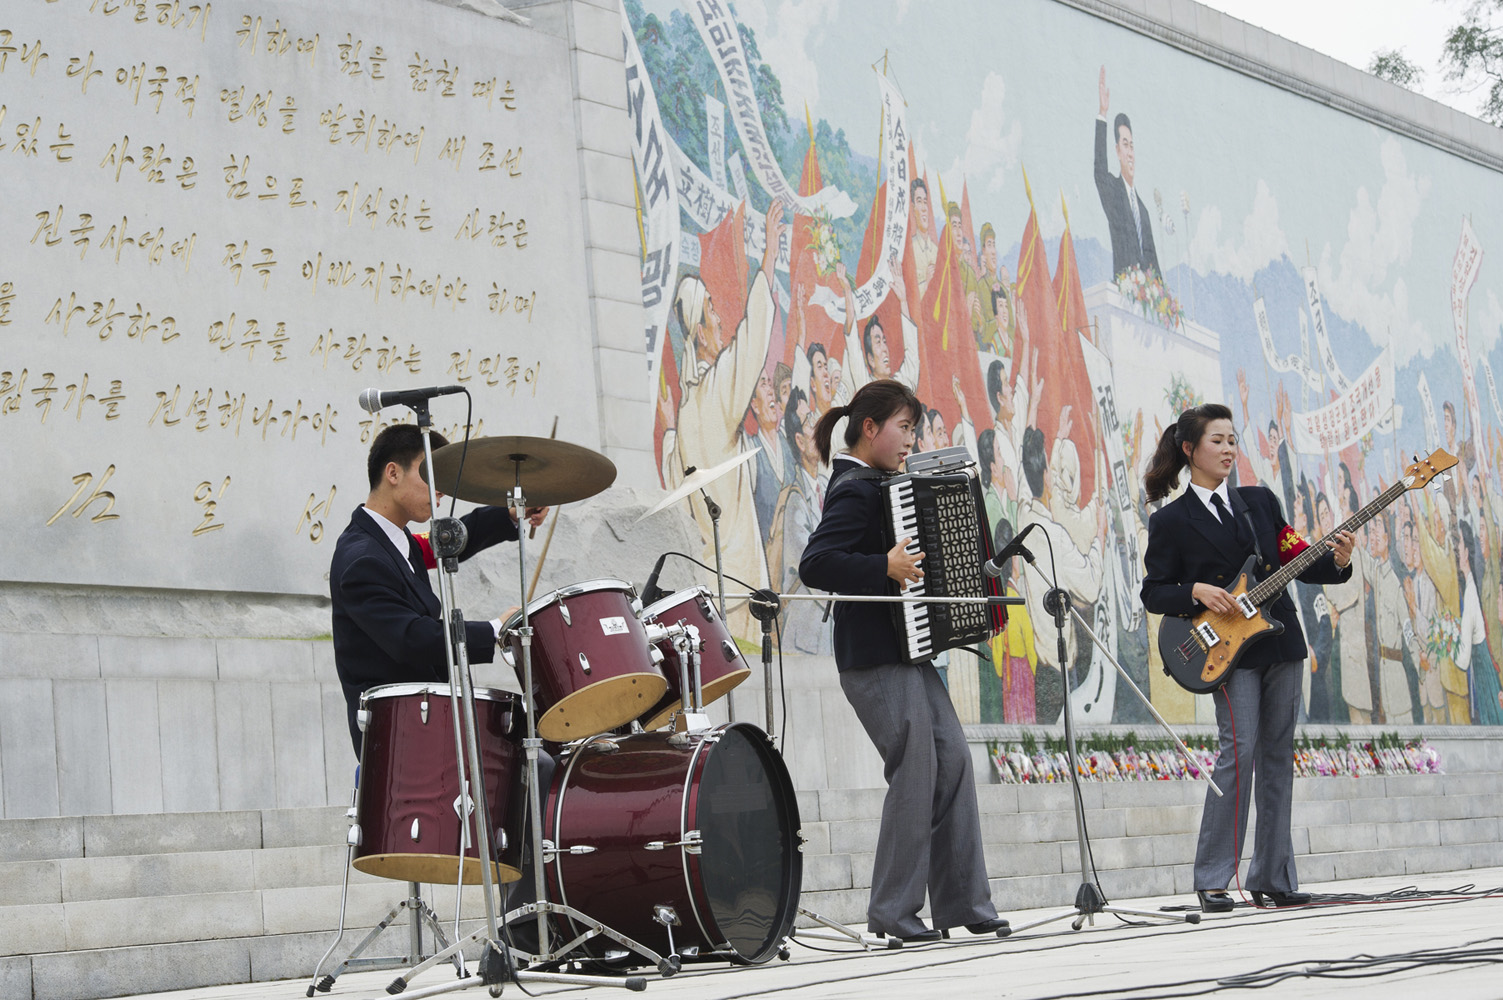 Live music on the national day in North Korea, with a band playing in front of a Communist propaganda bulletin board.